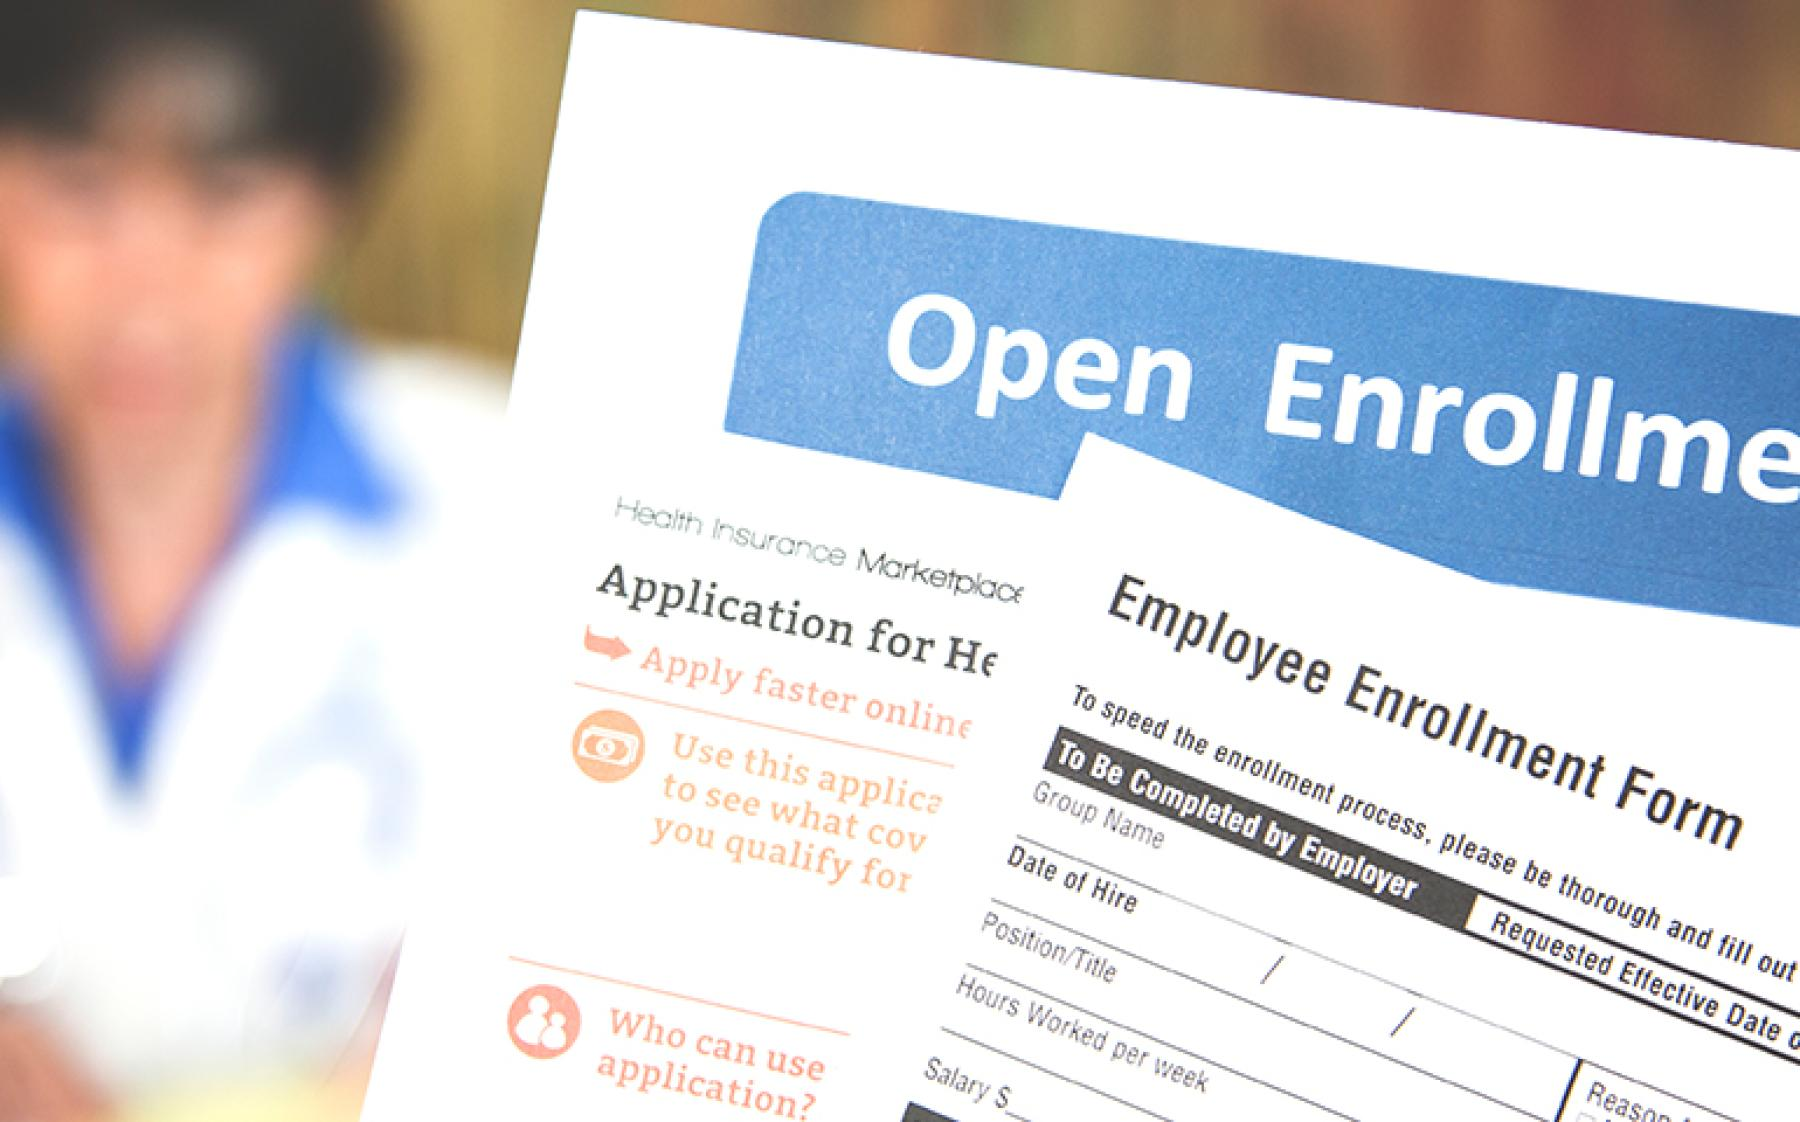 Image of open enrollment forms.